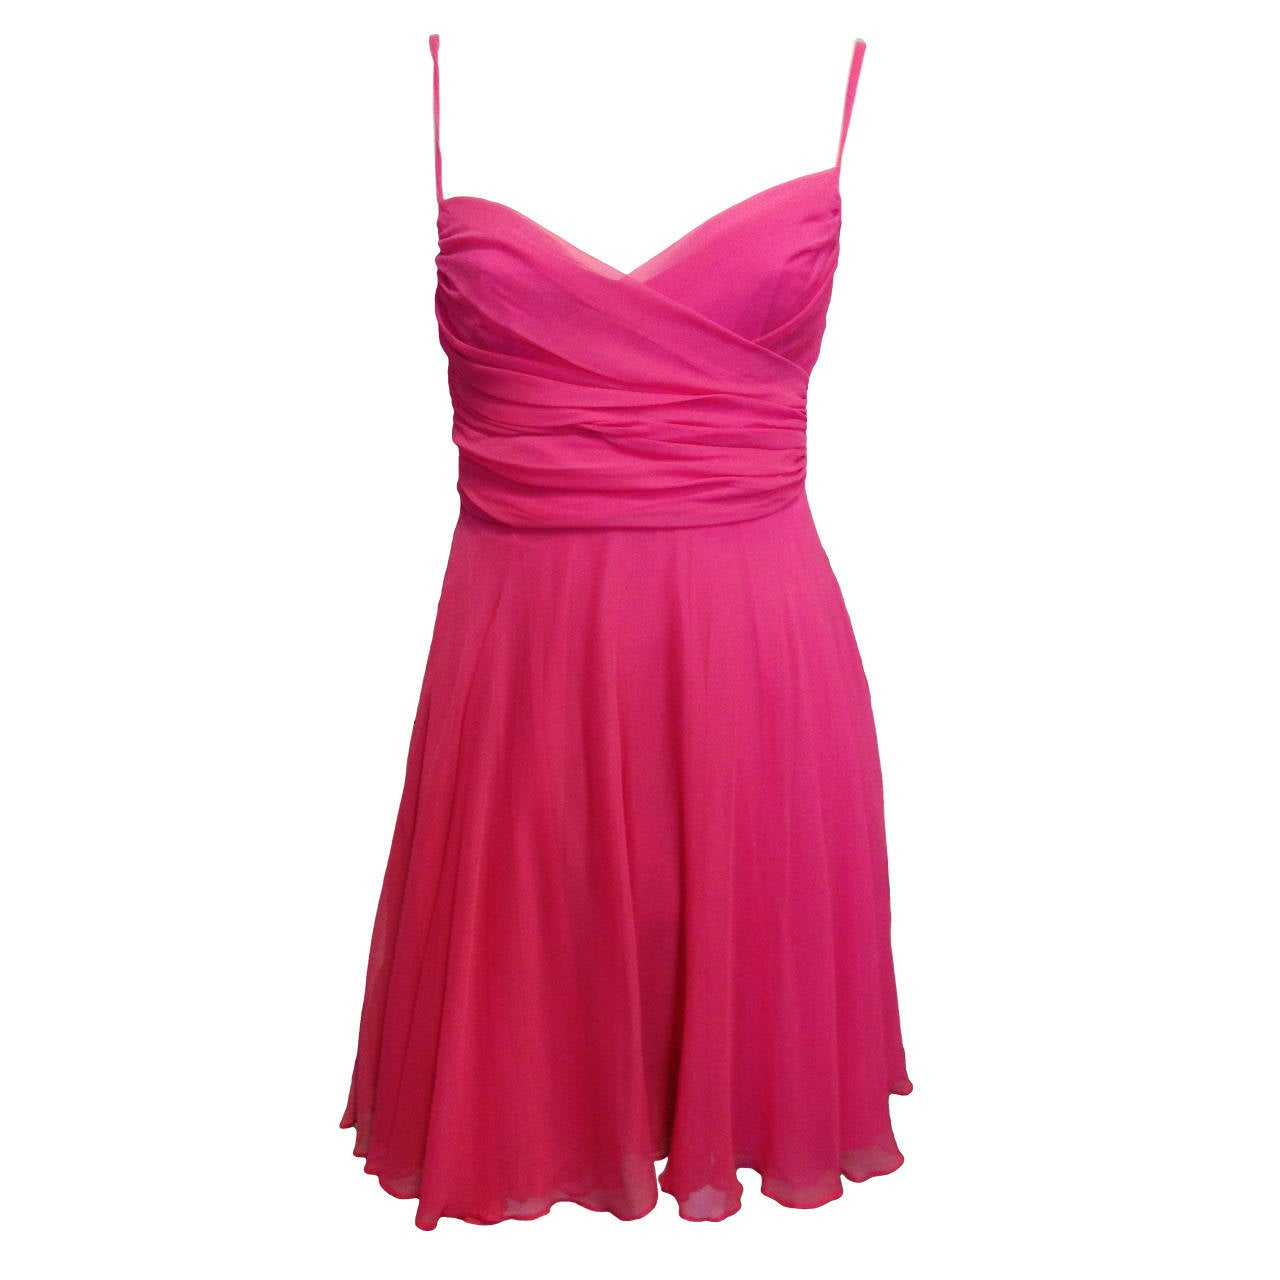 Sophie Sitbon Pink Chiffon Dress For Sale